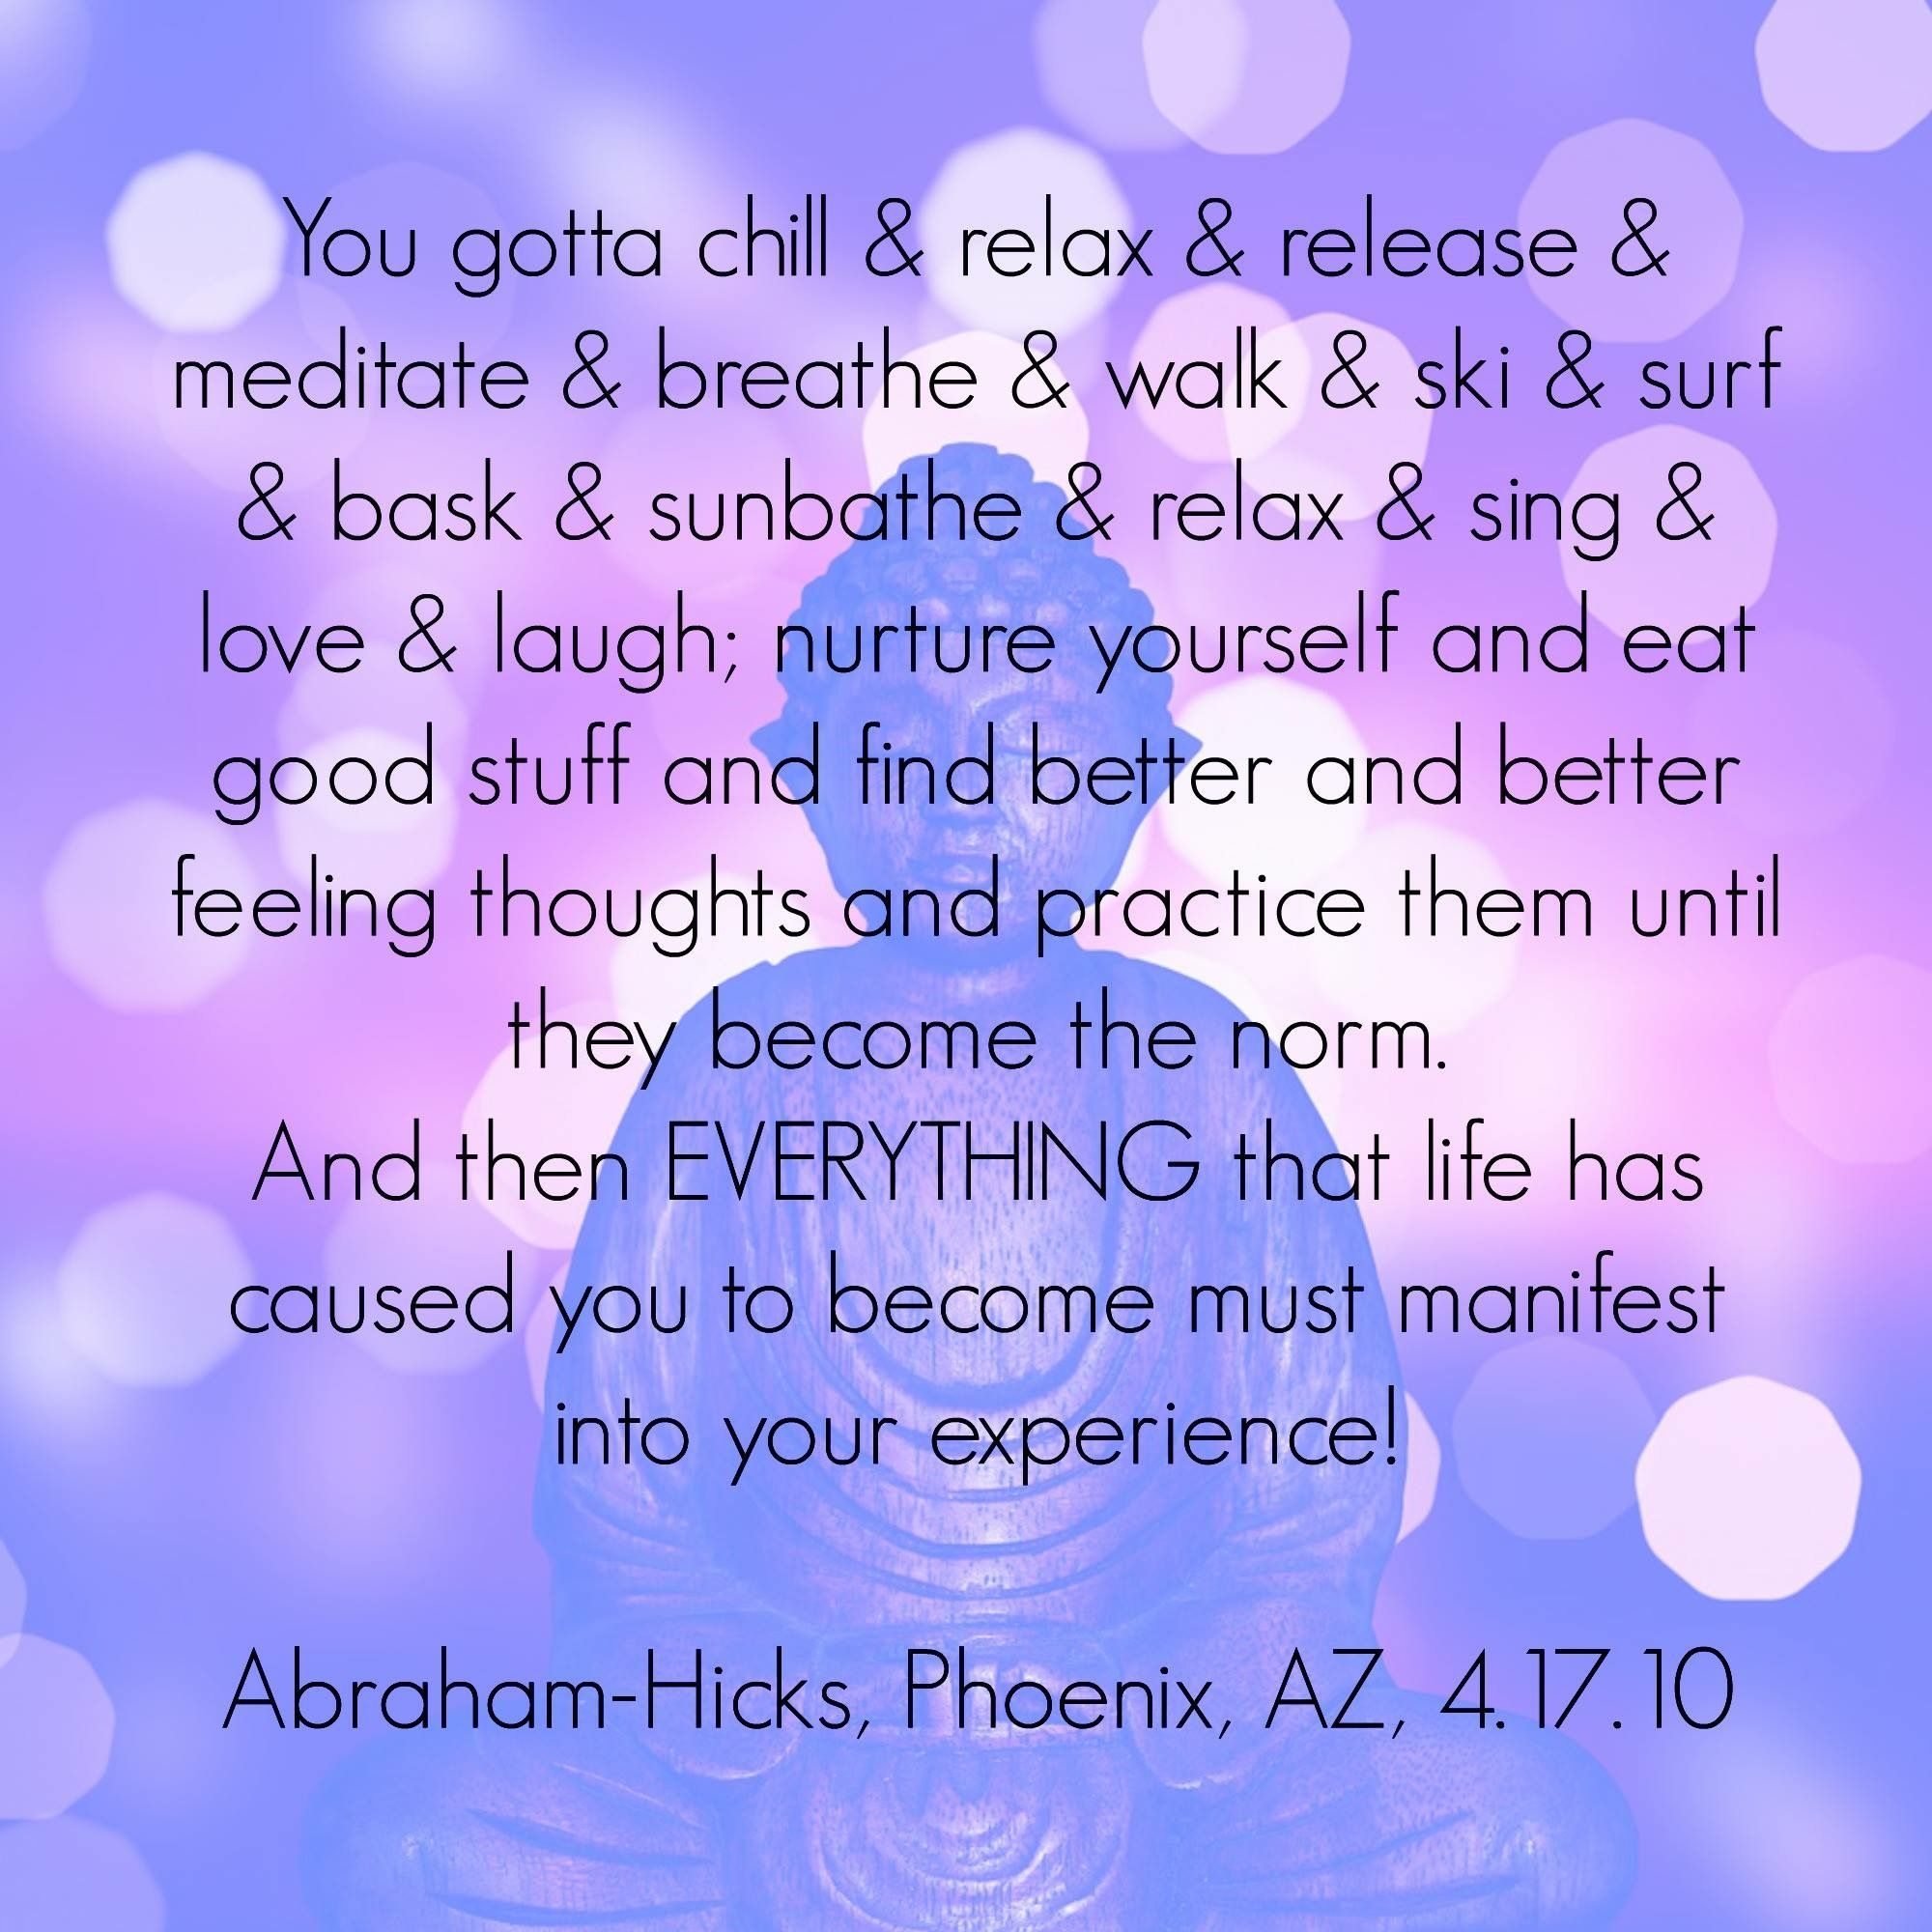 Laws Of Attraction Quotes Click The Pin For Awesome Topics On Law Of Attraction Working Too